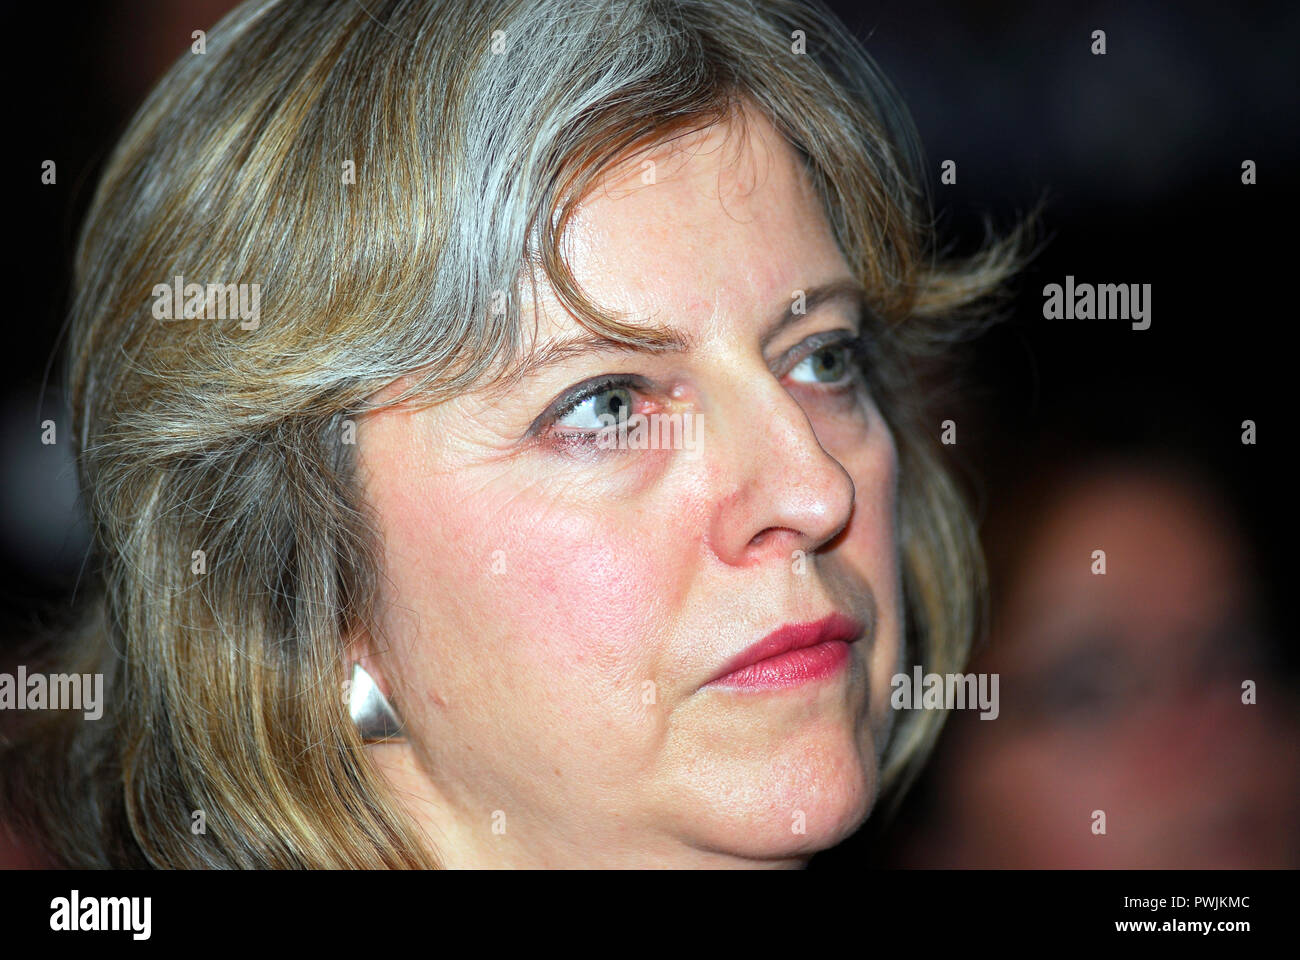 Theresa May MP (born 1 October 1956), British Prime Minister since 2016 & MP for Maidenhead, Berkshire. Photographed when she was Shadow Leader... - Stock Image